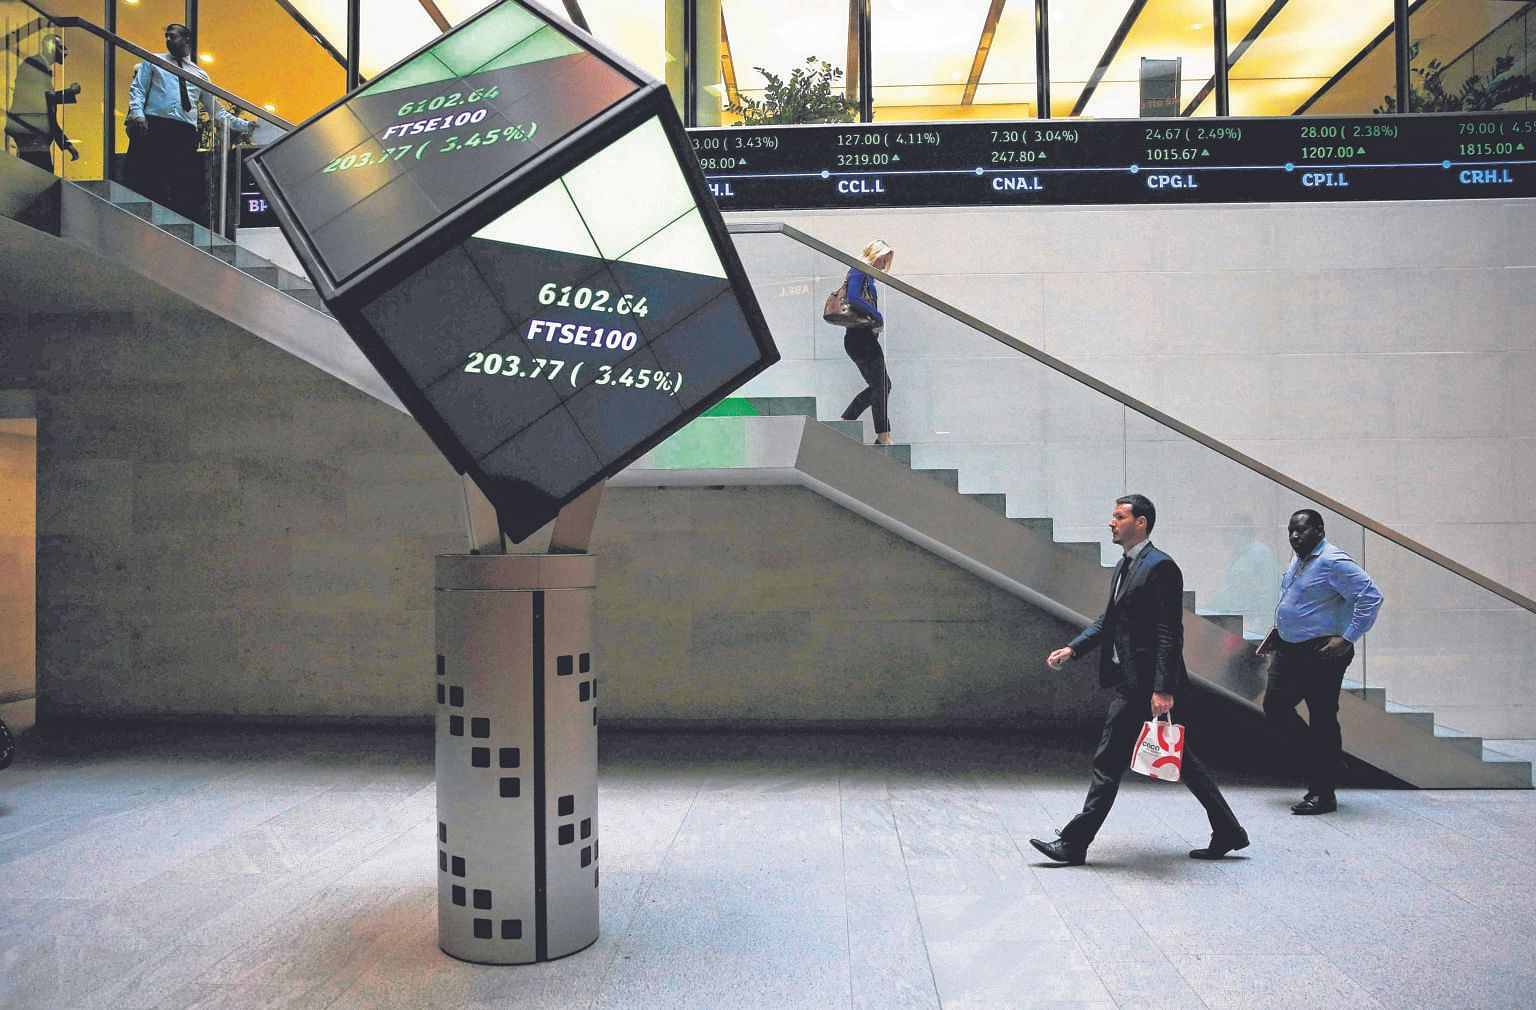 Growing via acquisitions is a well-trodden route. The London Stock Exchange (above), for instance, is in the midst of a merger with Deutsche Borse.